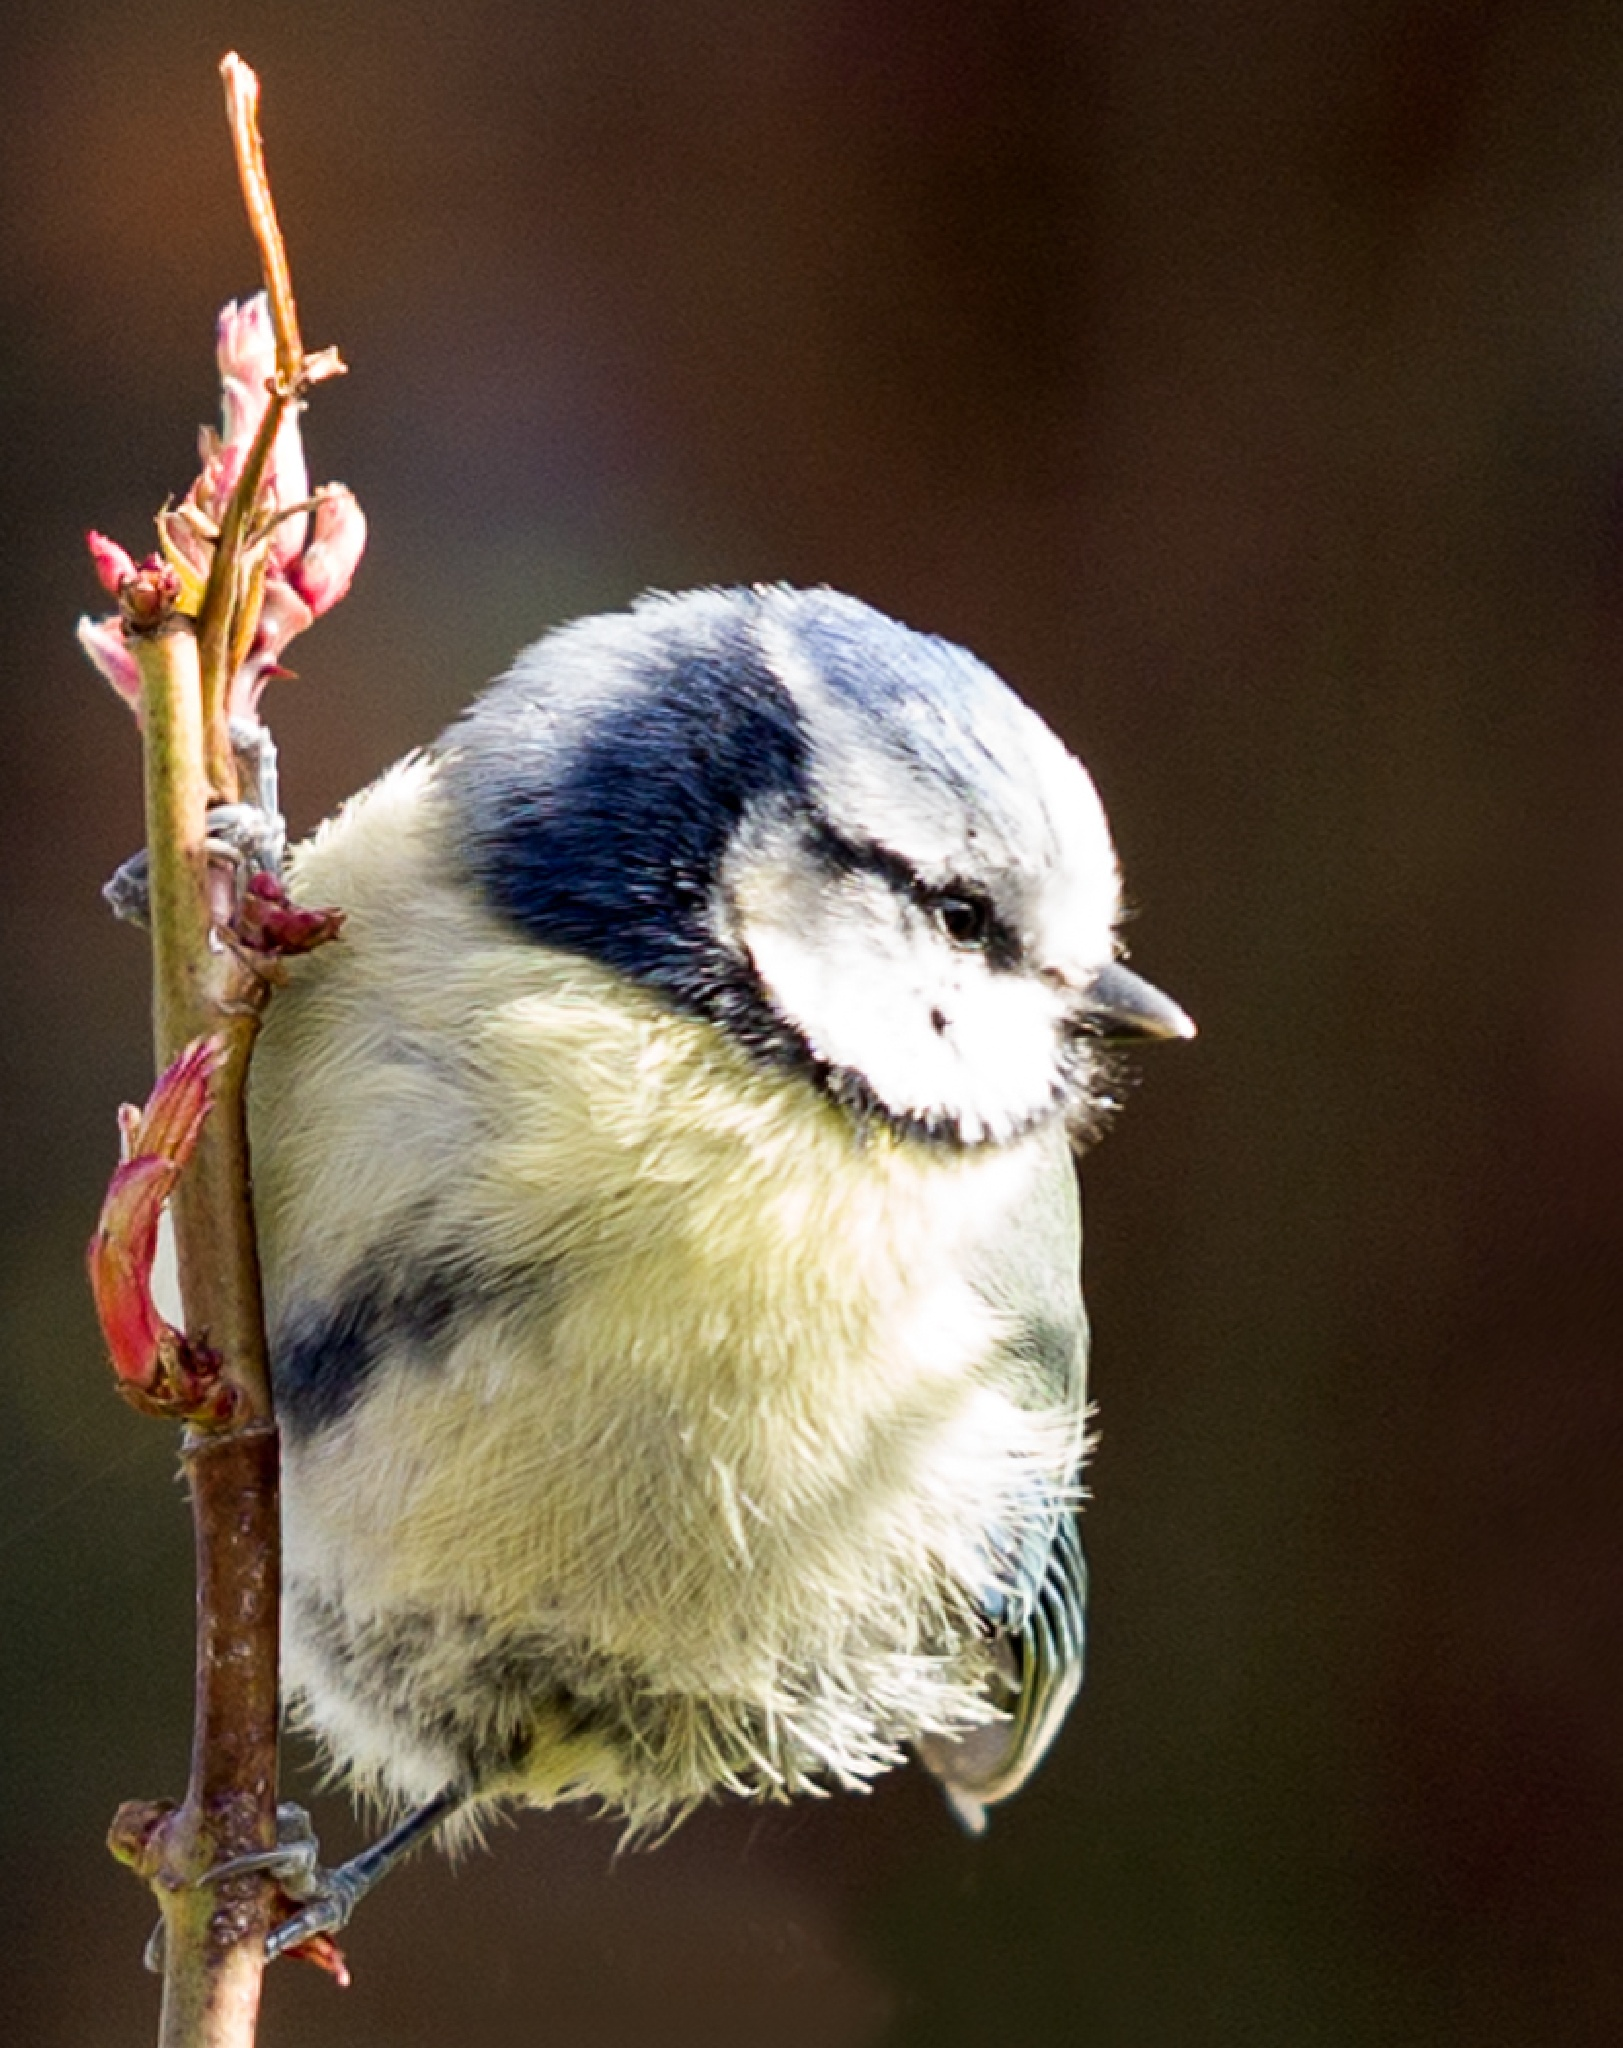 Blue Tit - clinging to a rose by escargo2k